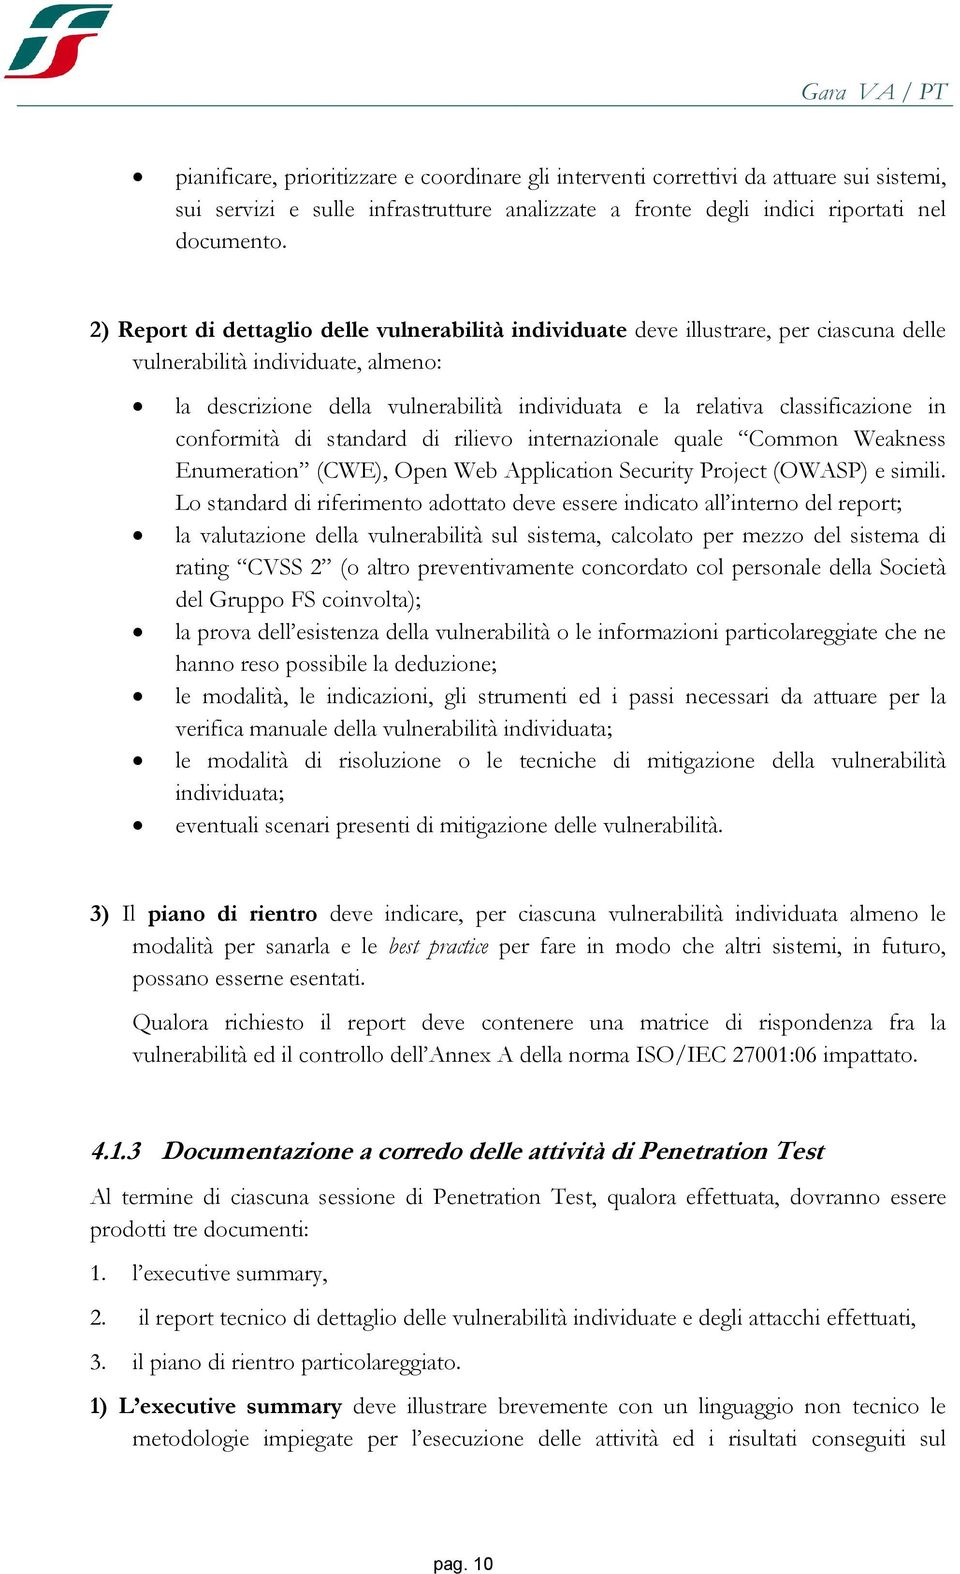 in cnfrmità di standard di riliev internazinale quale Cmmn Weakness Enumeratin (CWE), Open Web Applicatin Security Prject (OWASP) e simili.